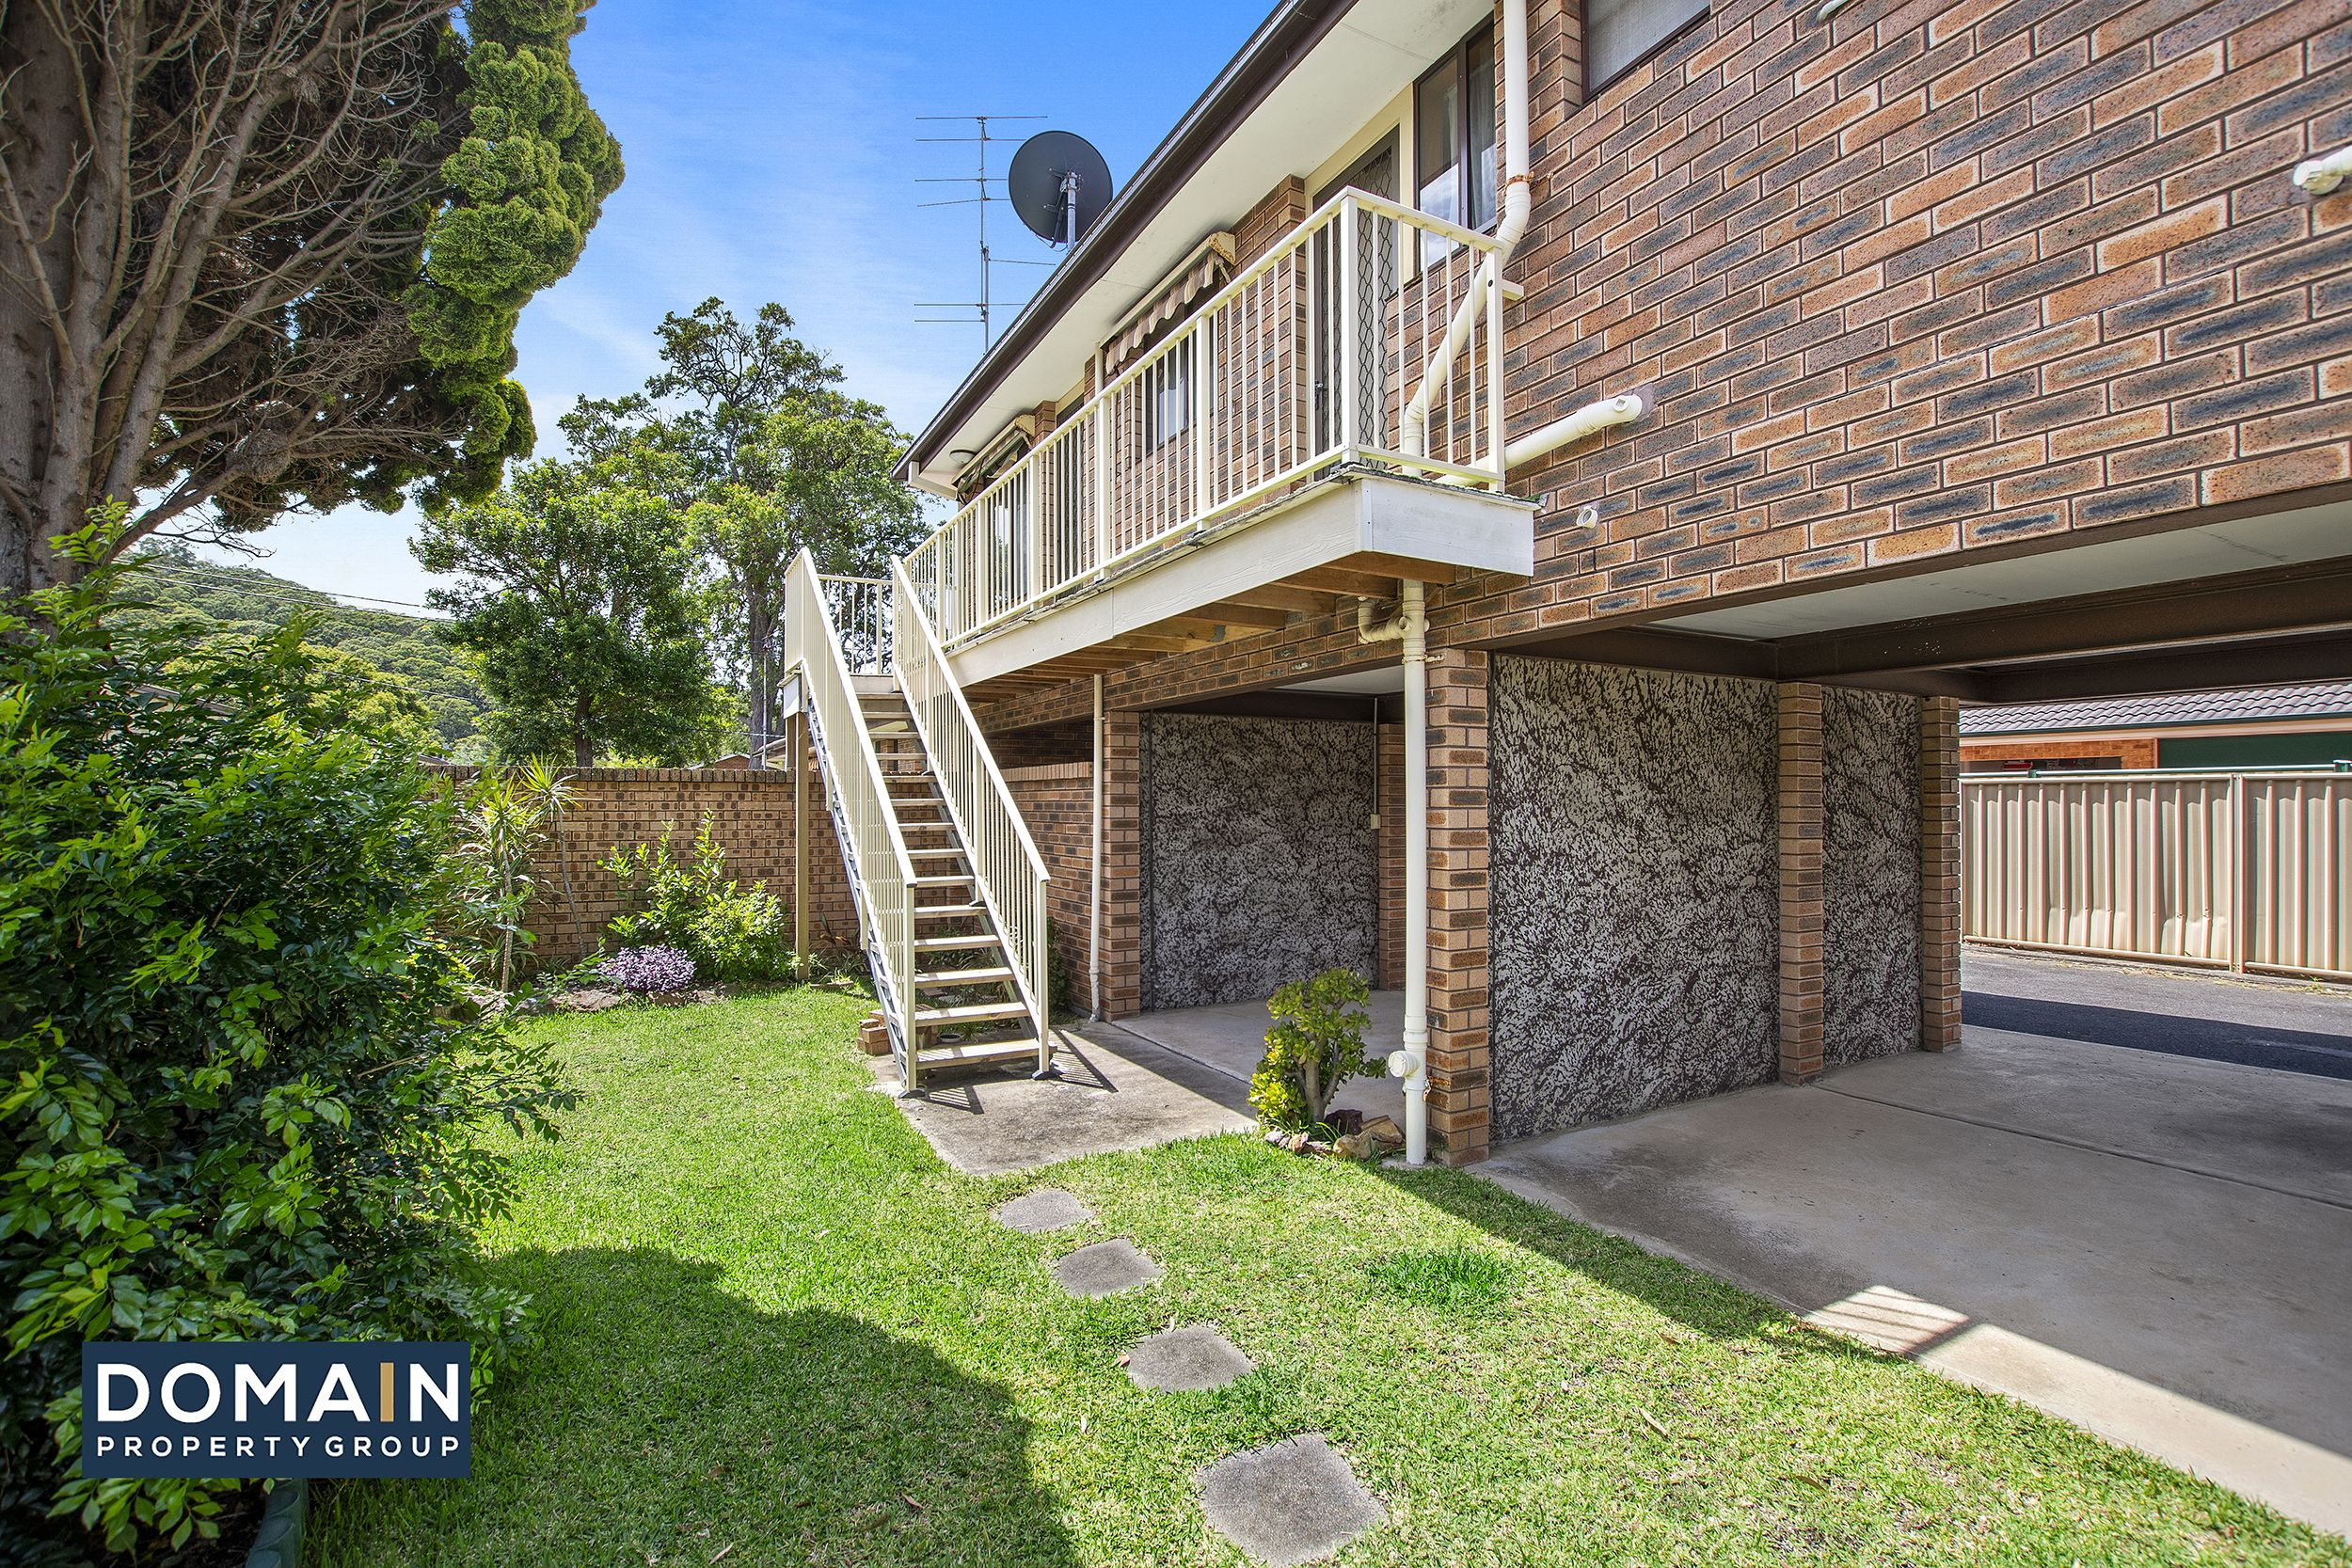 2/26 Flounder Road Ettalong Beach 2257